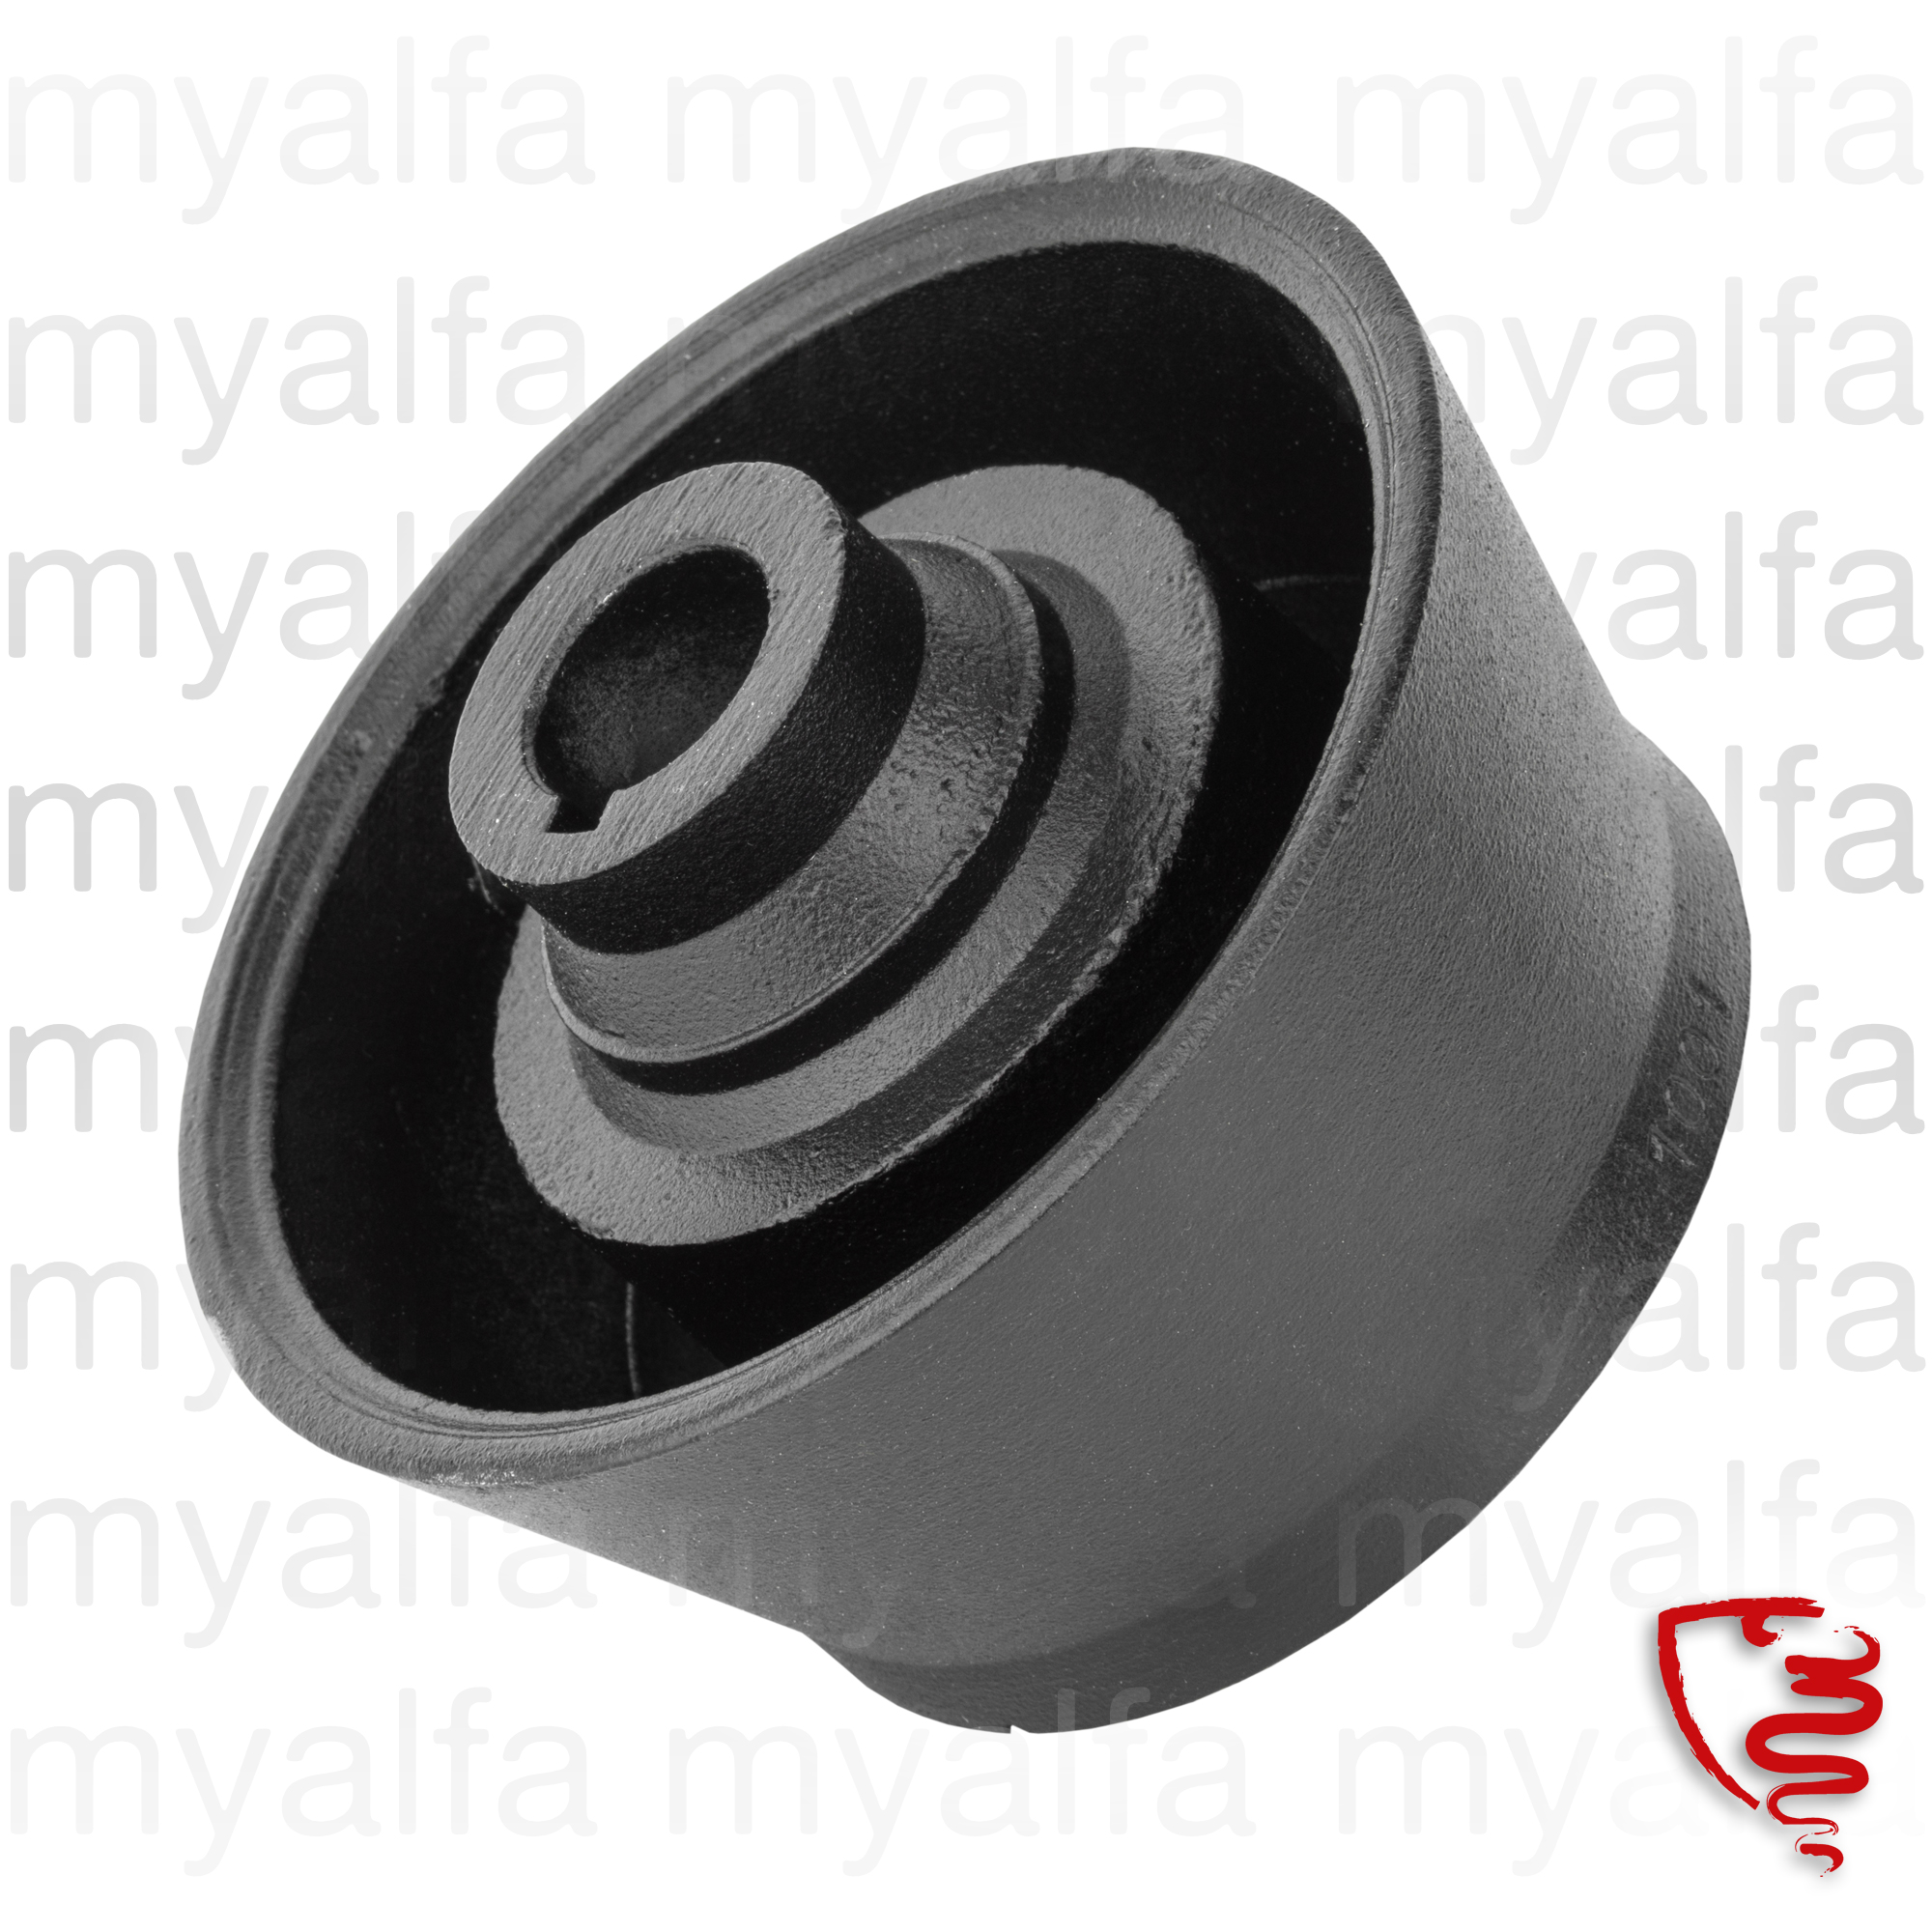 Wheel hub for shallow direction for 105/115, Interior, Steering wheels, Steering hubs